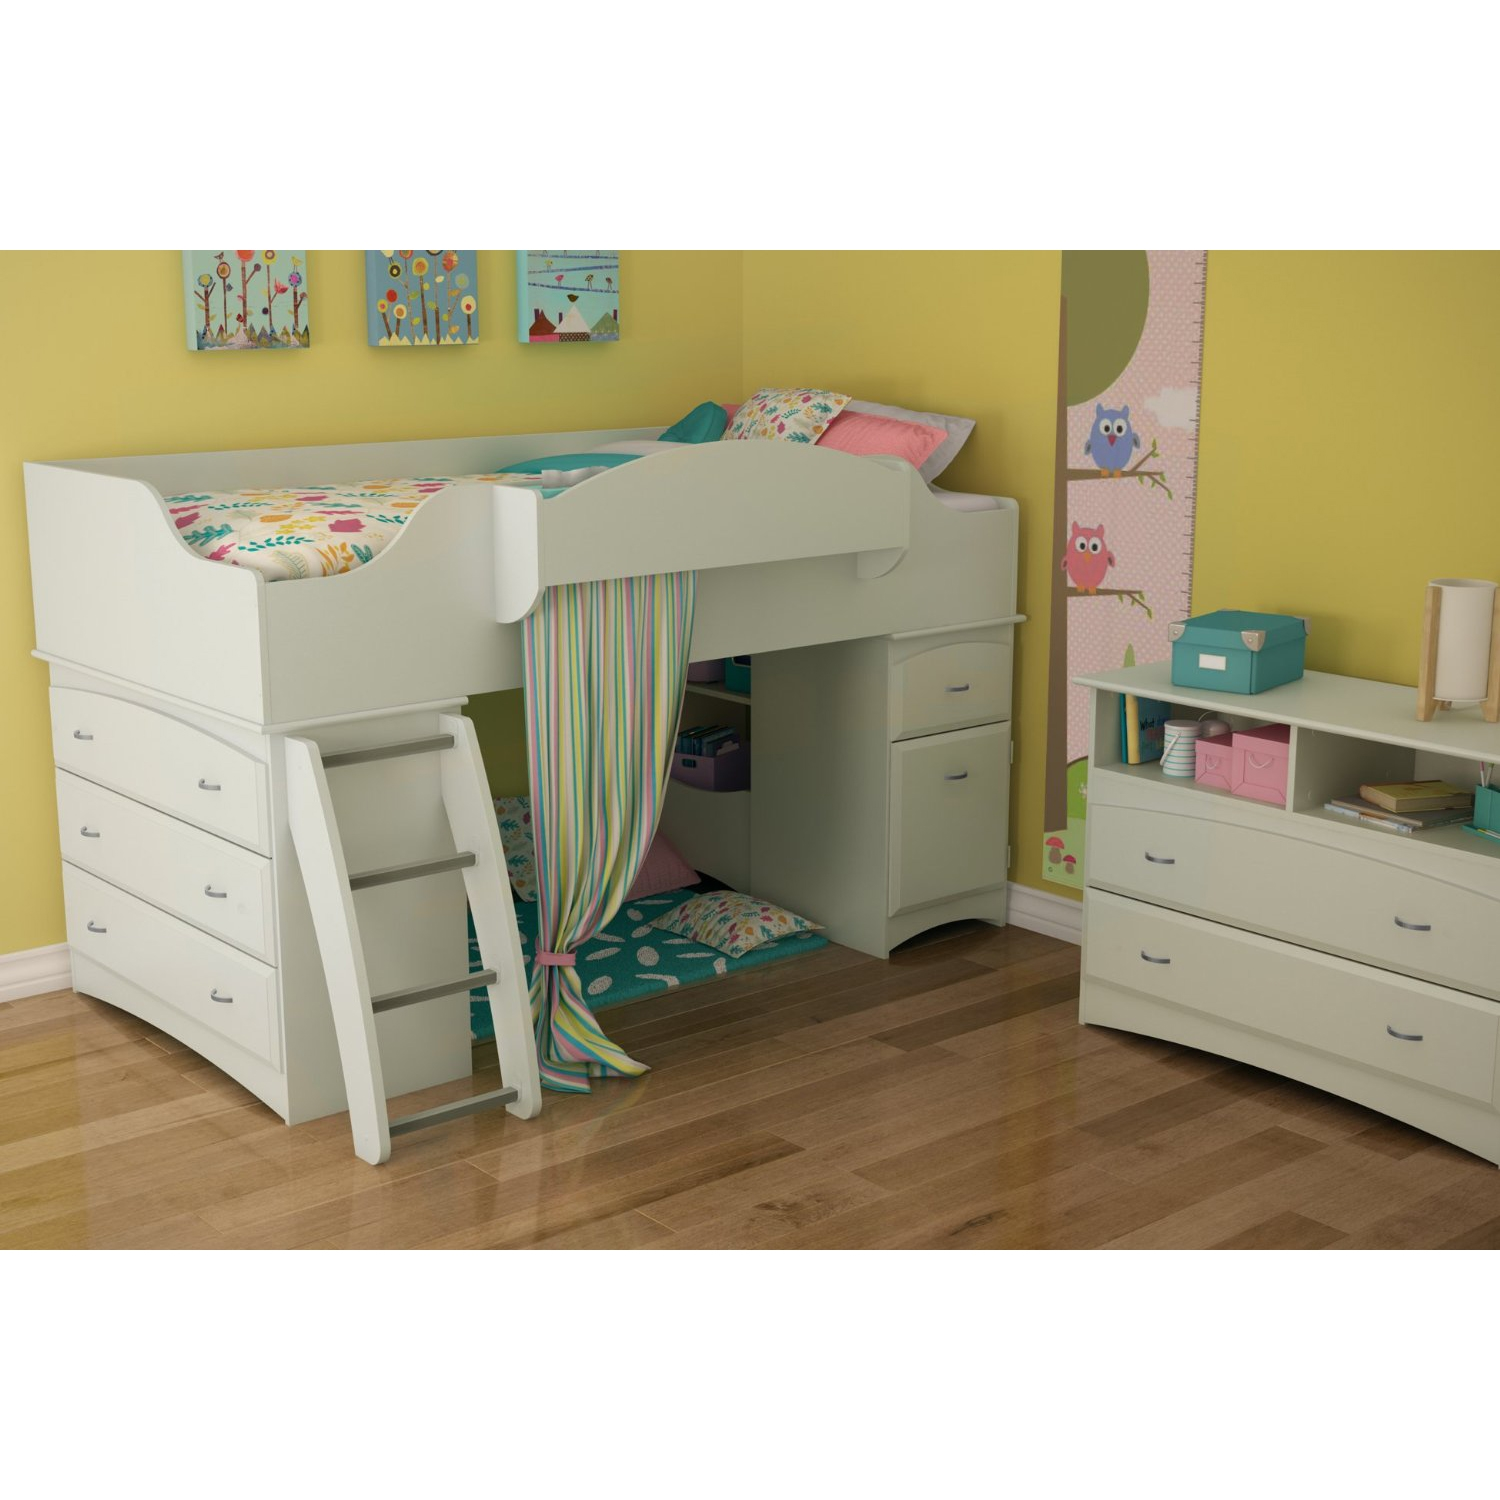 Imagine Storage Unit - 2 Drawers, Pure White - SS-3560043